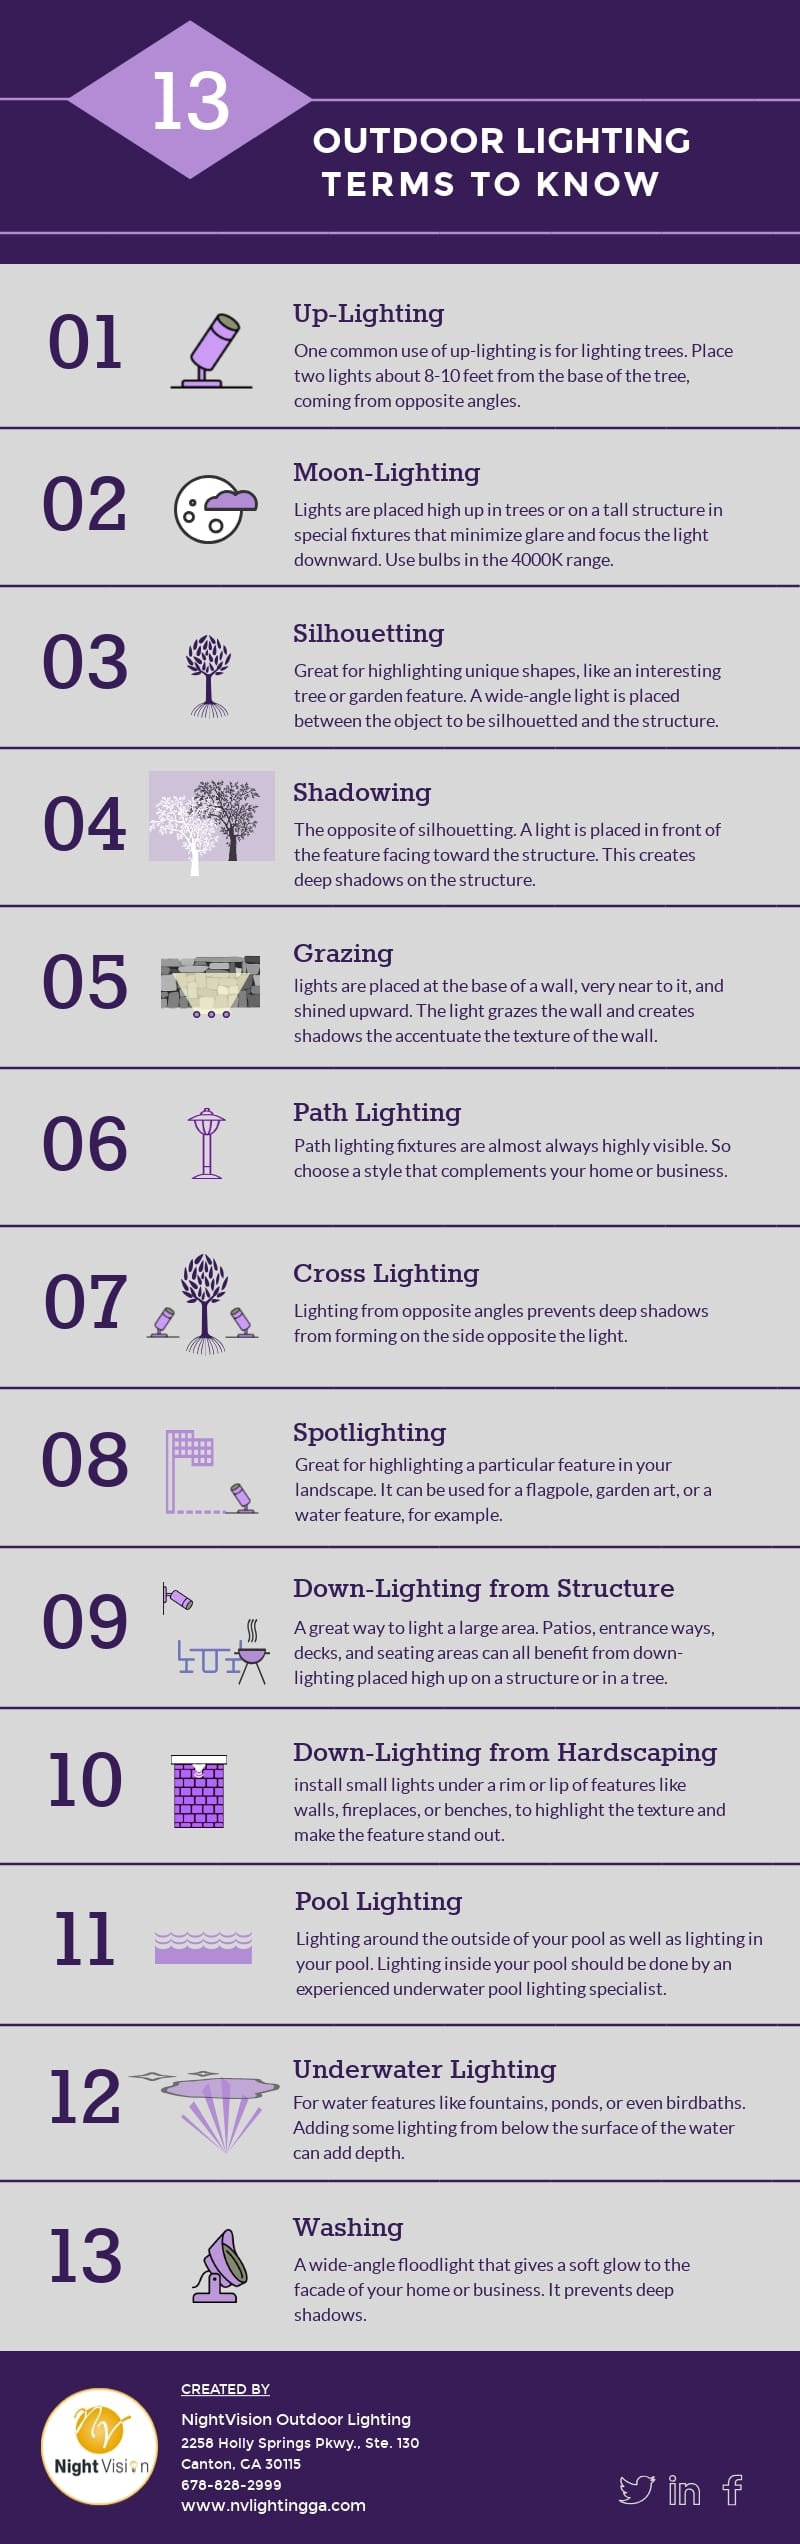 Outdoor Lighting Terms to Know [infographic]